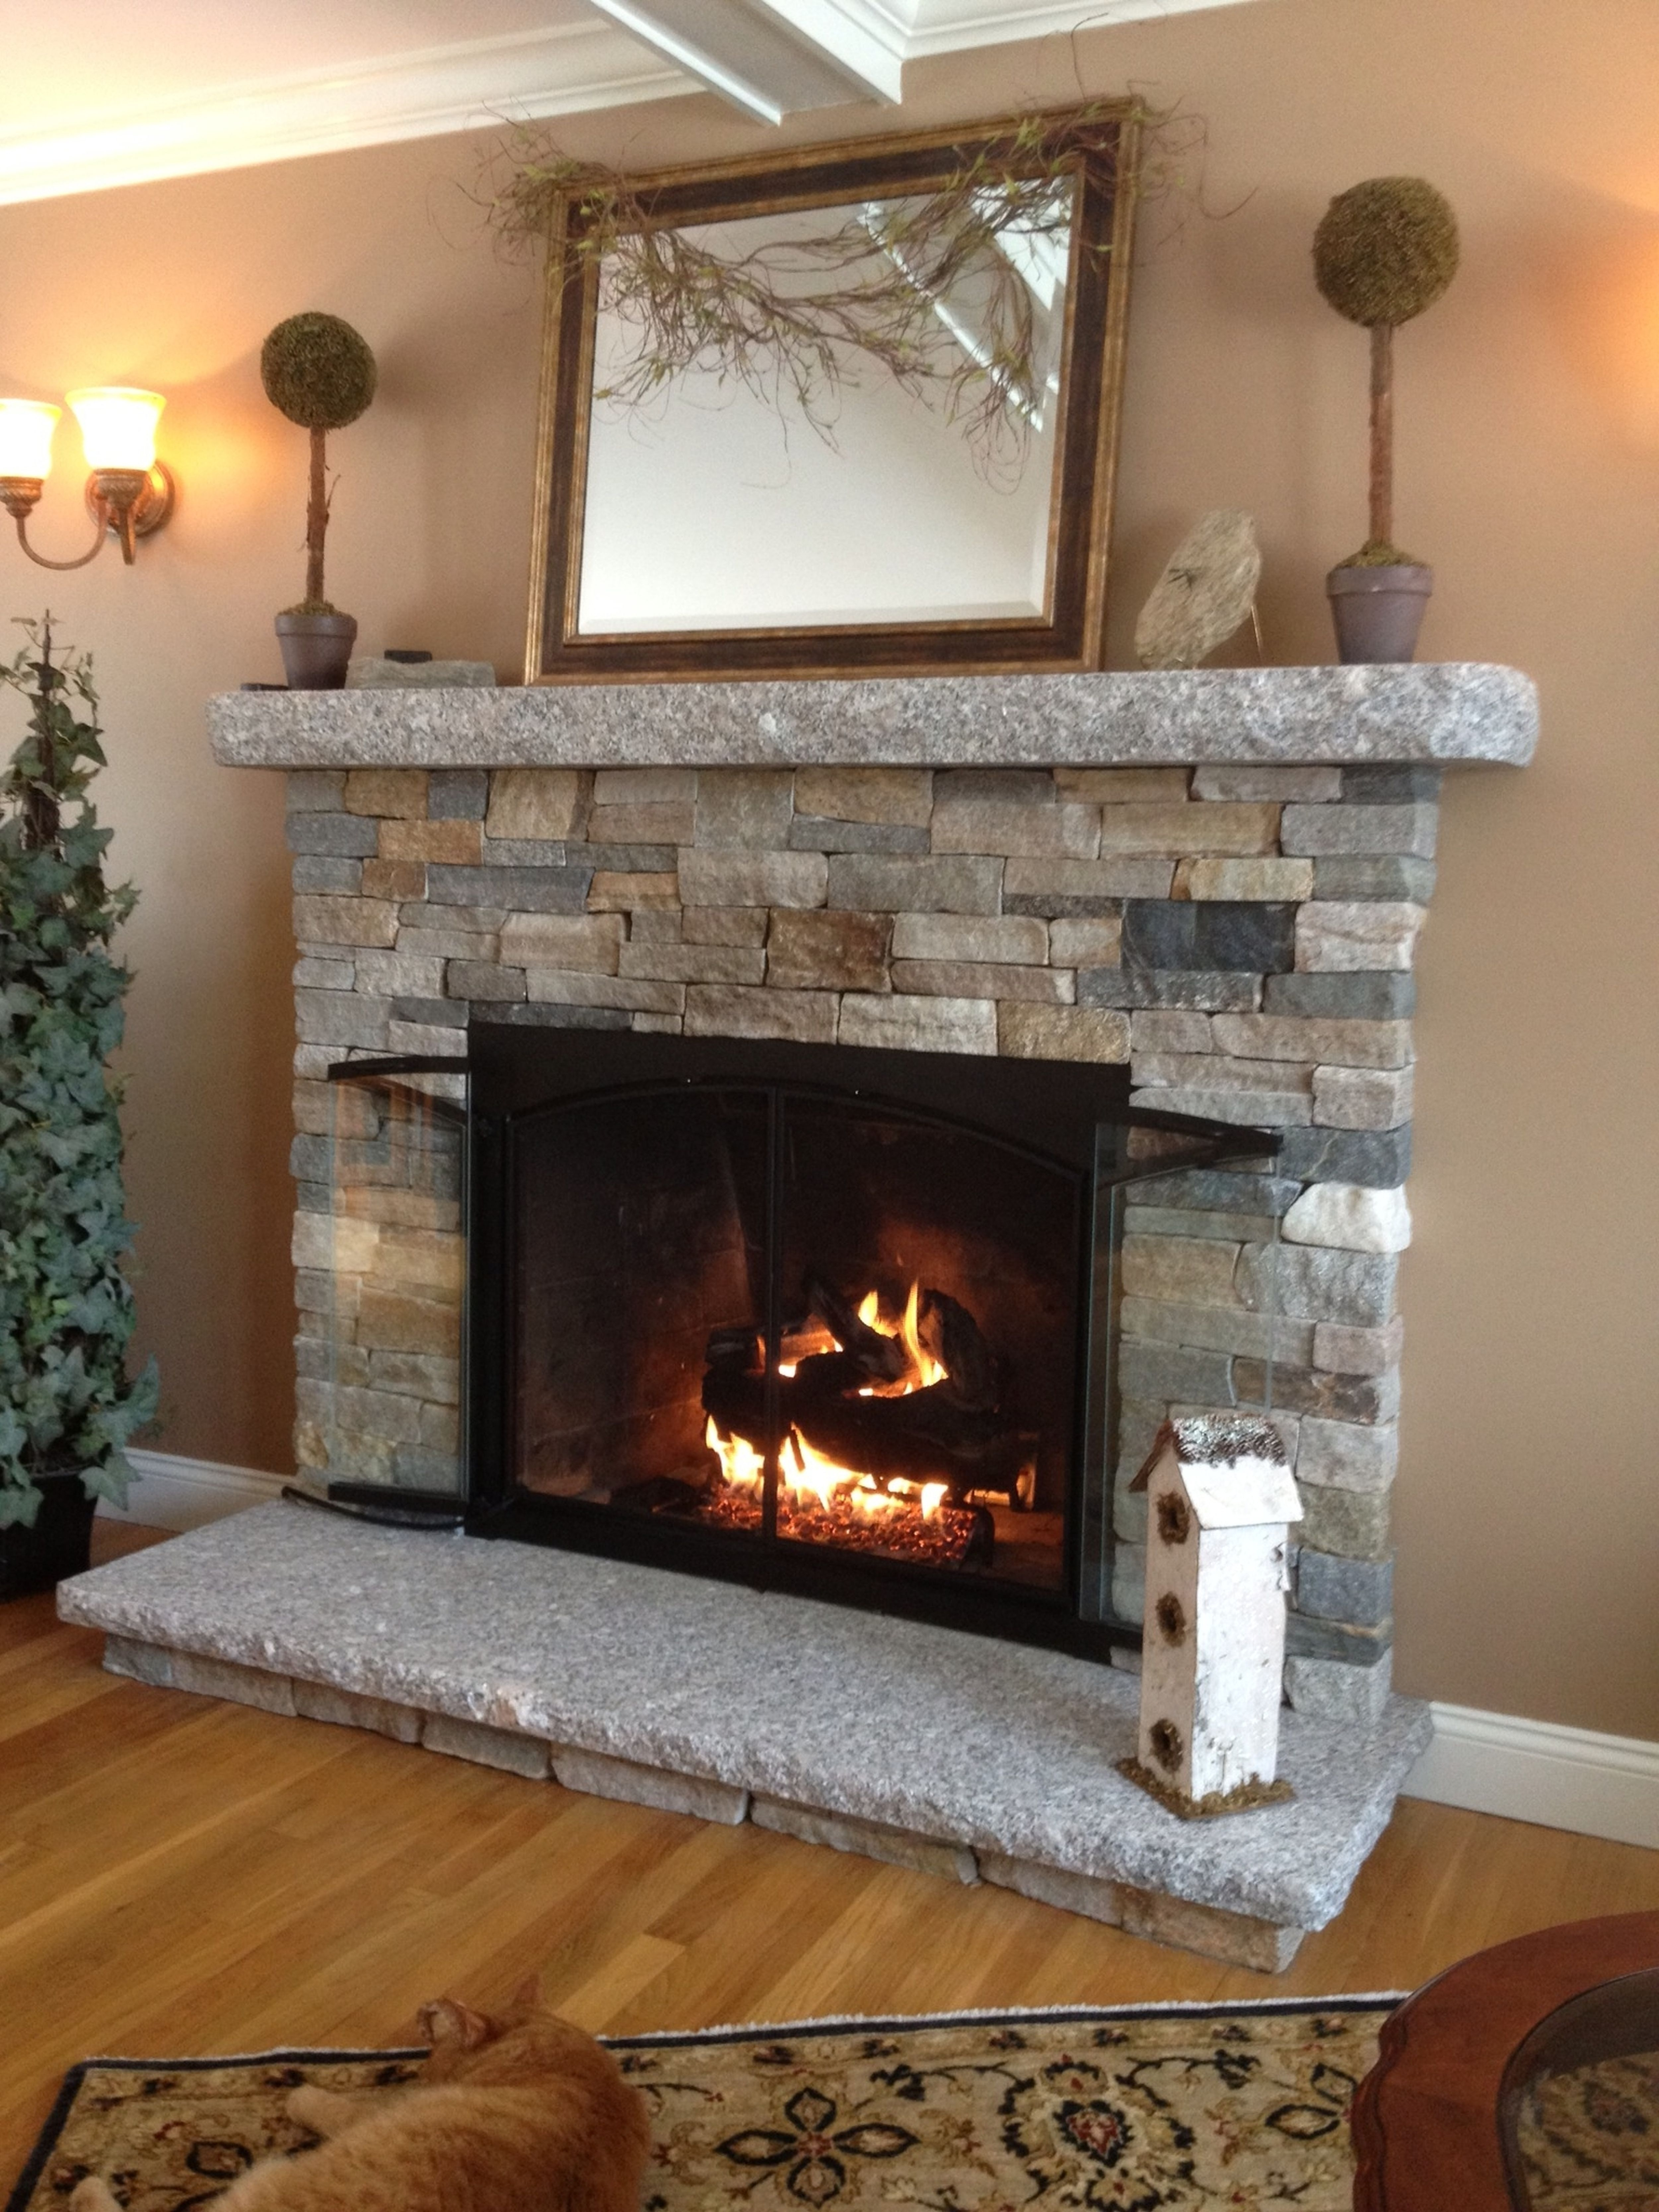 fireplace stone tile ideas fireplace stone tile ideas elegant view fireplace stone tile interior design ideas gallery with